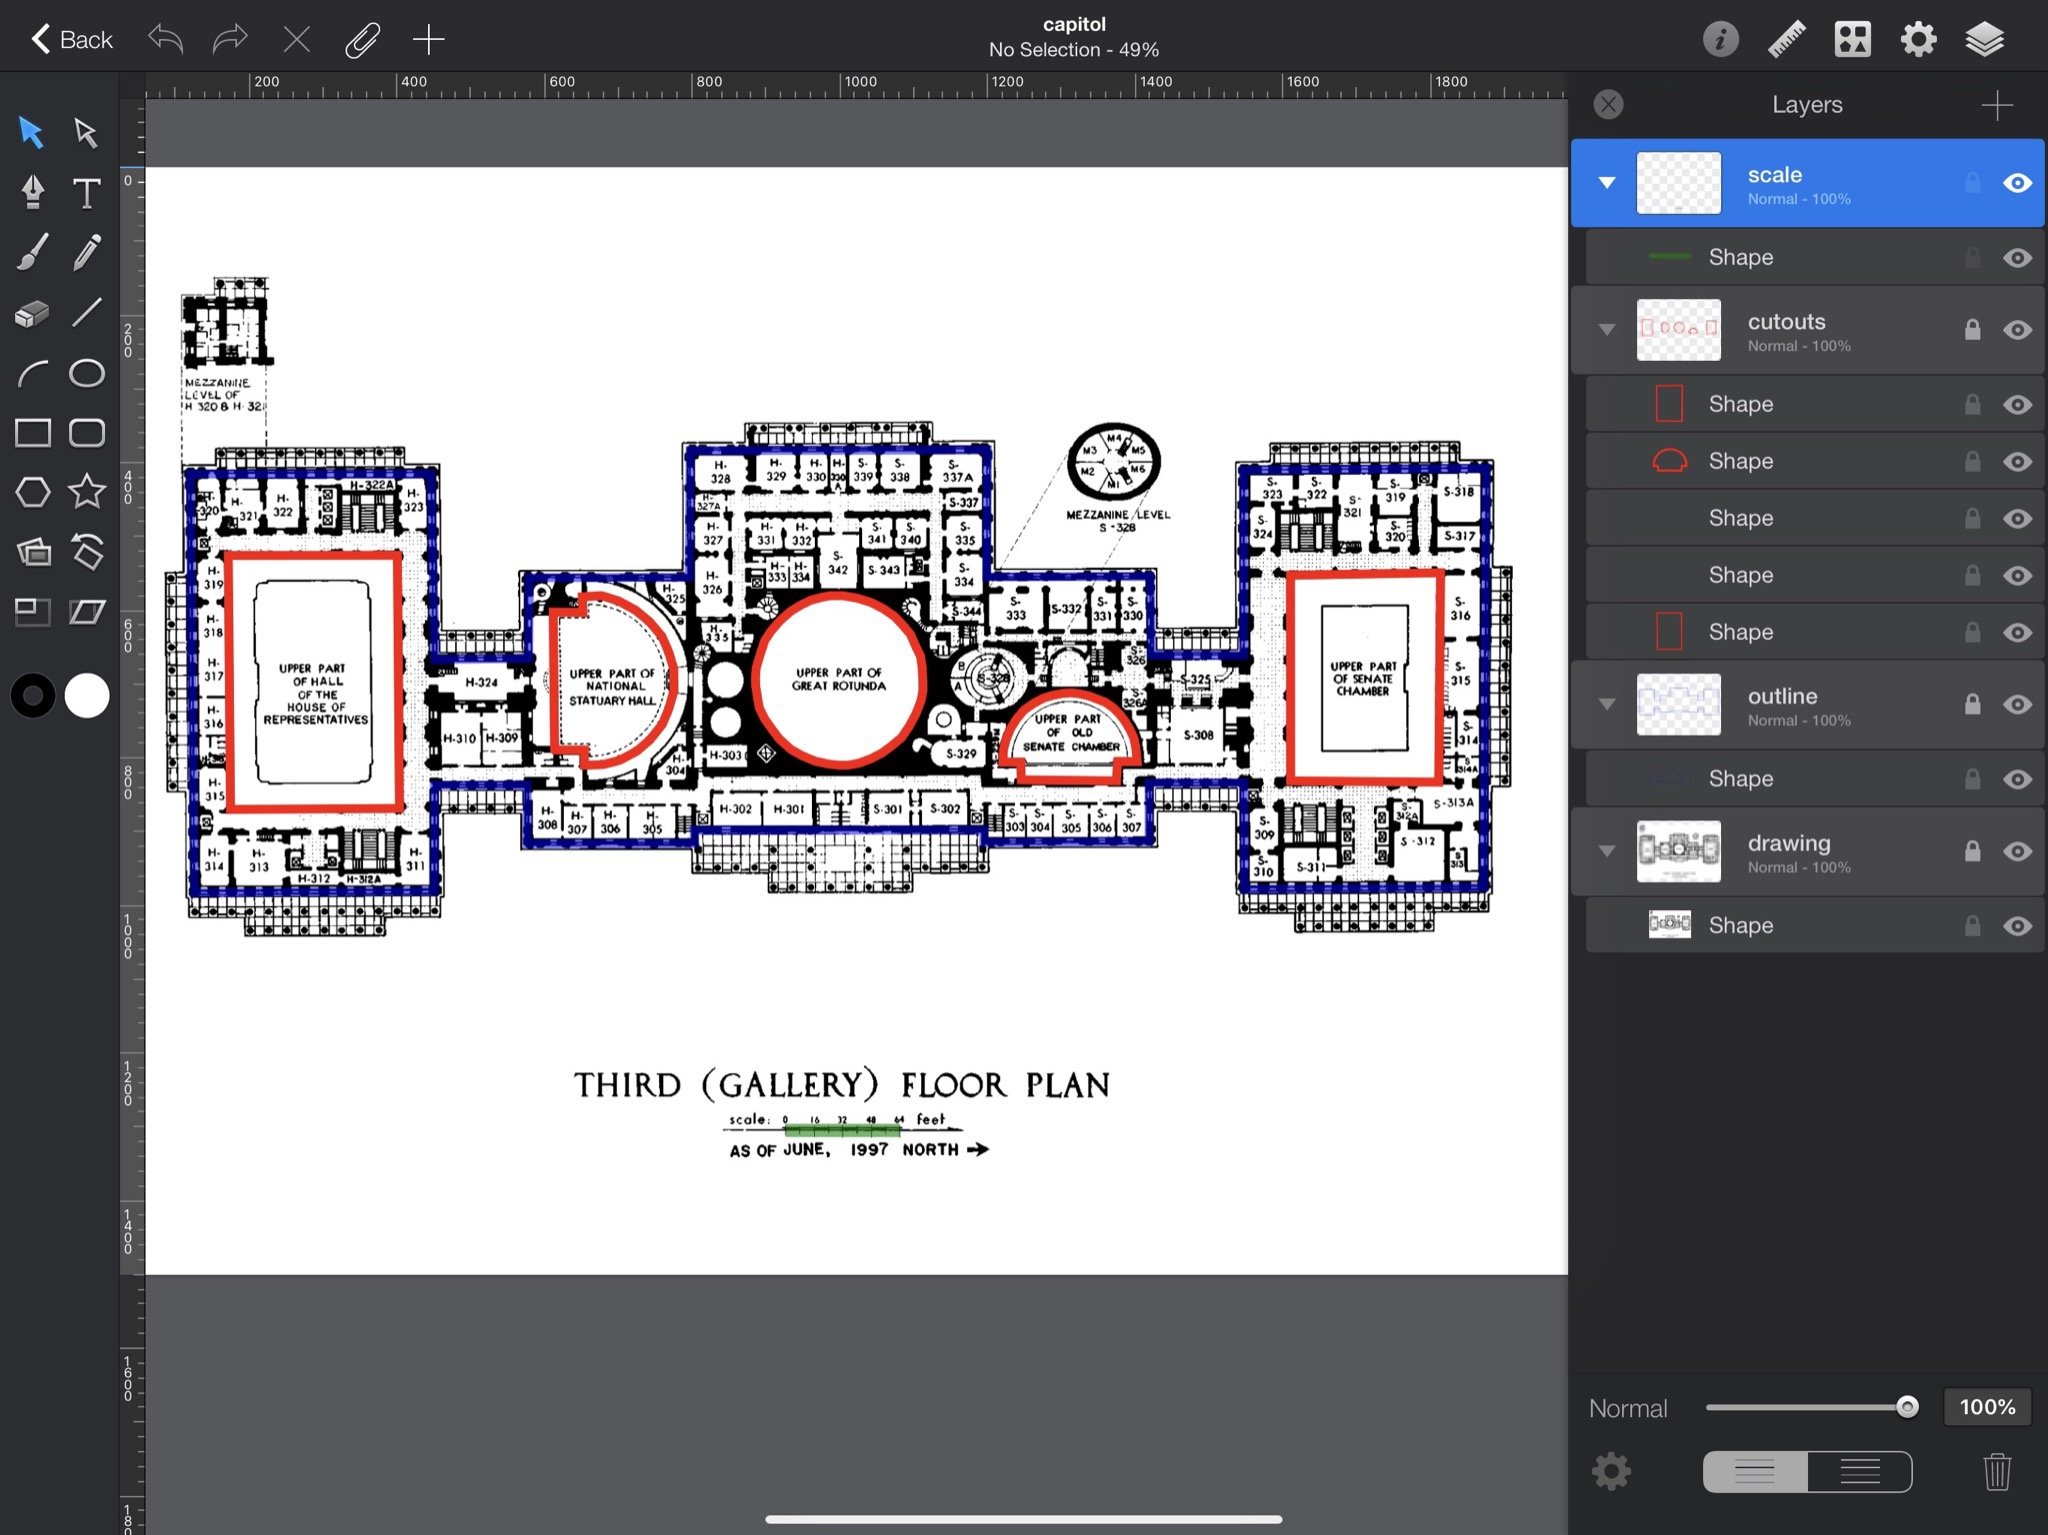 Annotating floor plan in Graphic